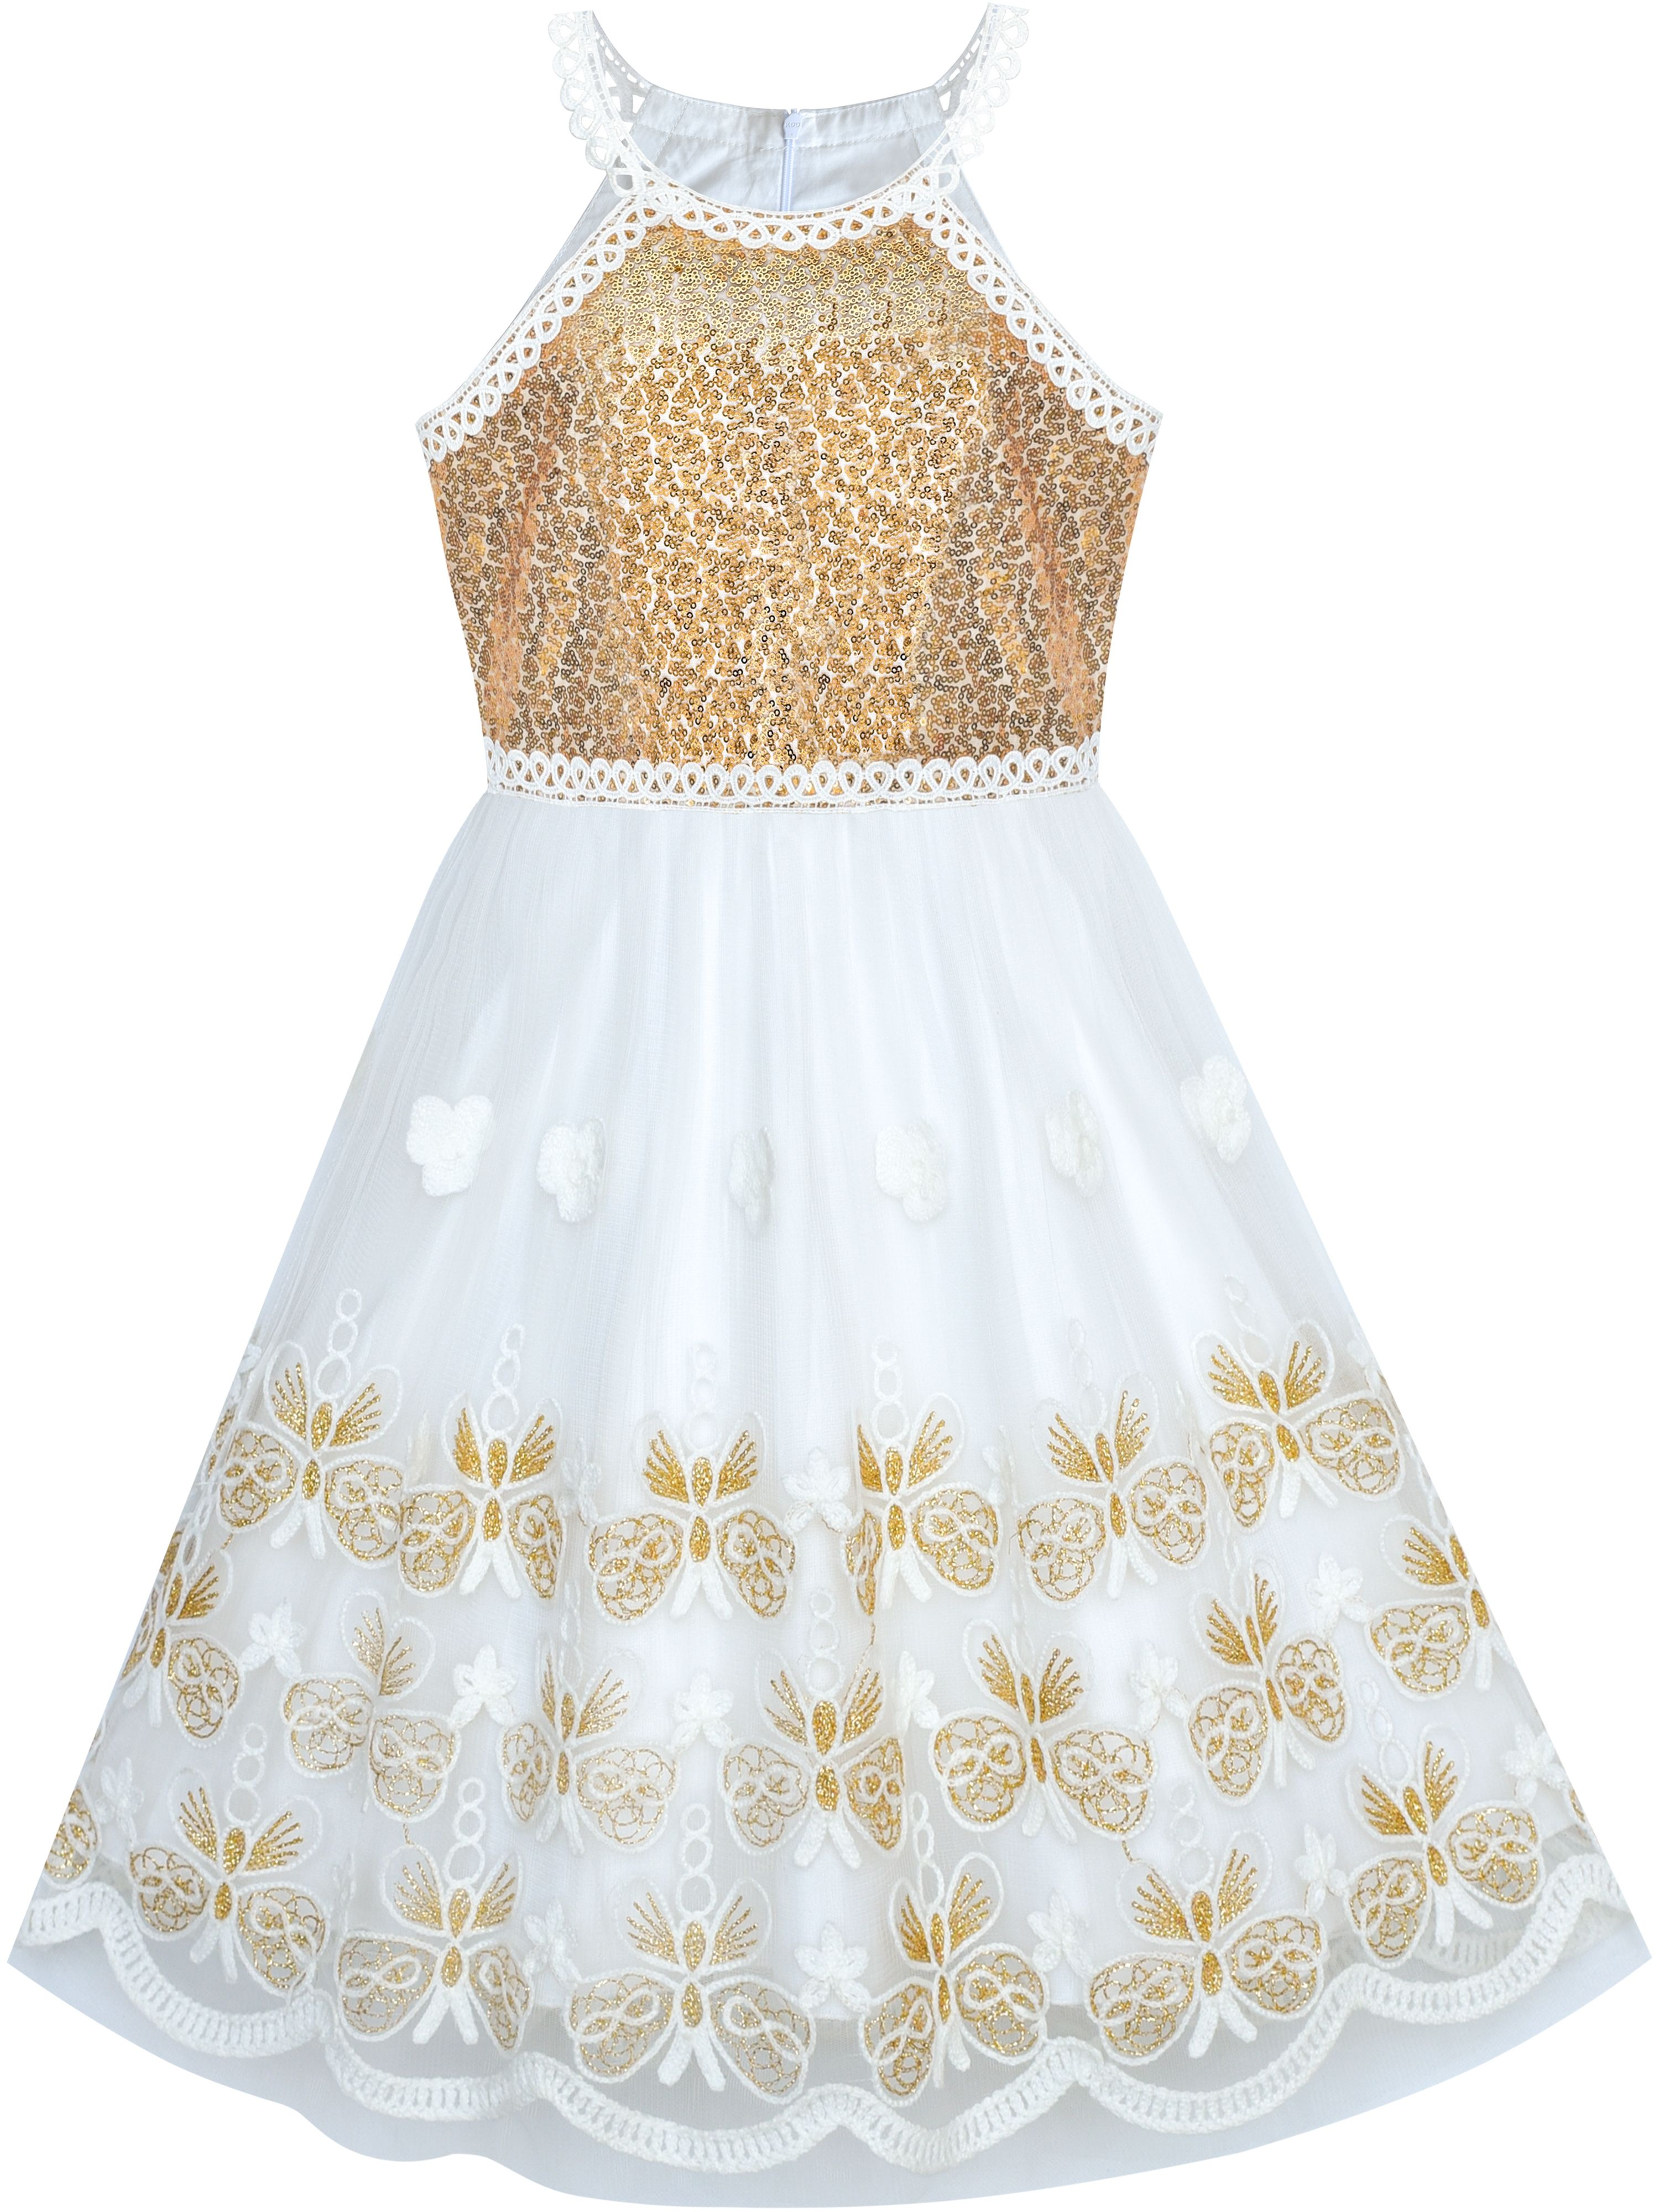 Girls Dress Gold Butterfly Embroidered Halter Dress Party 12 Years